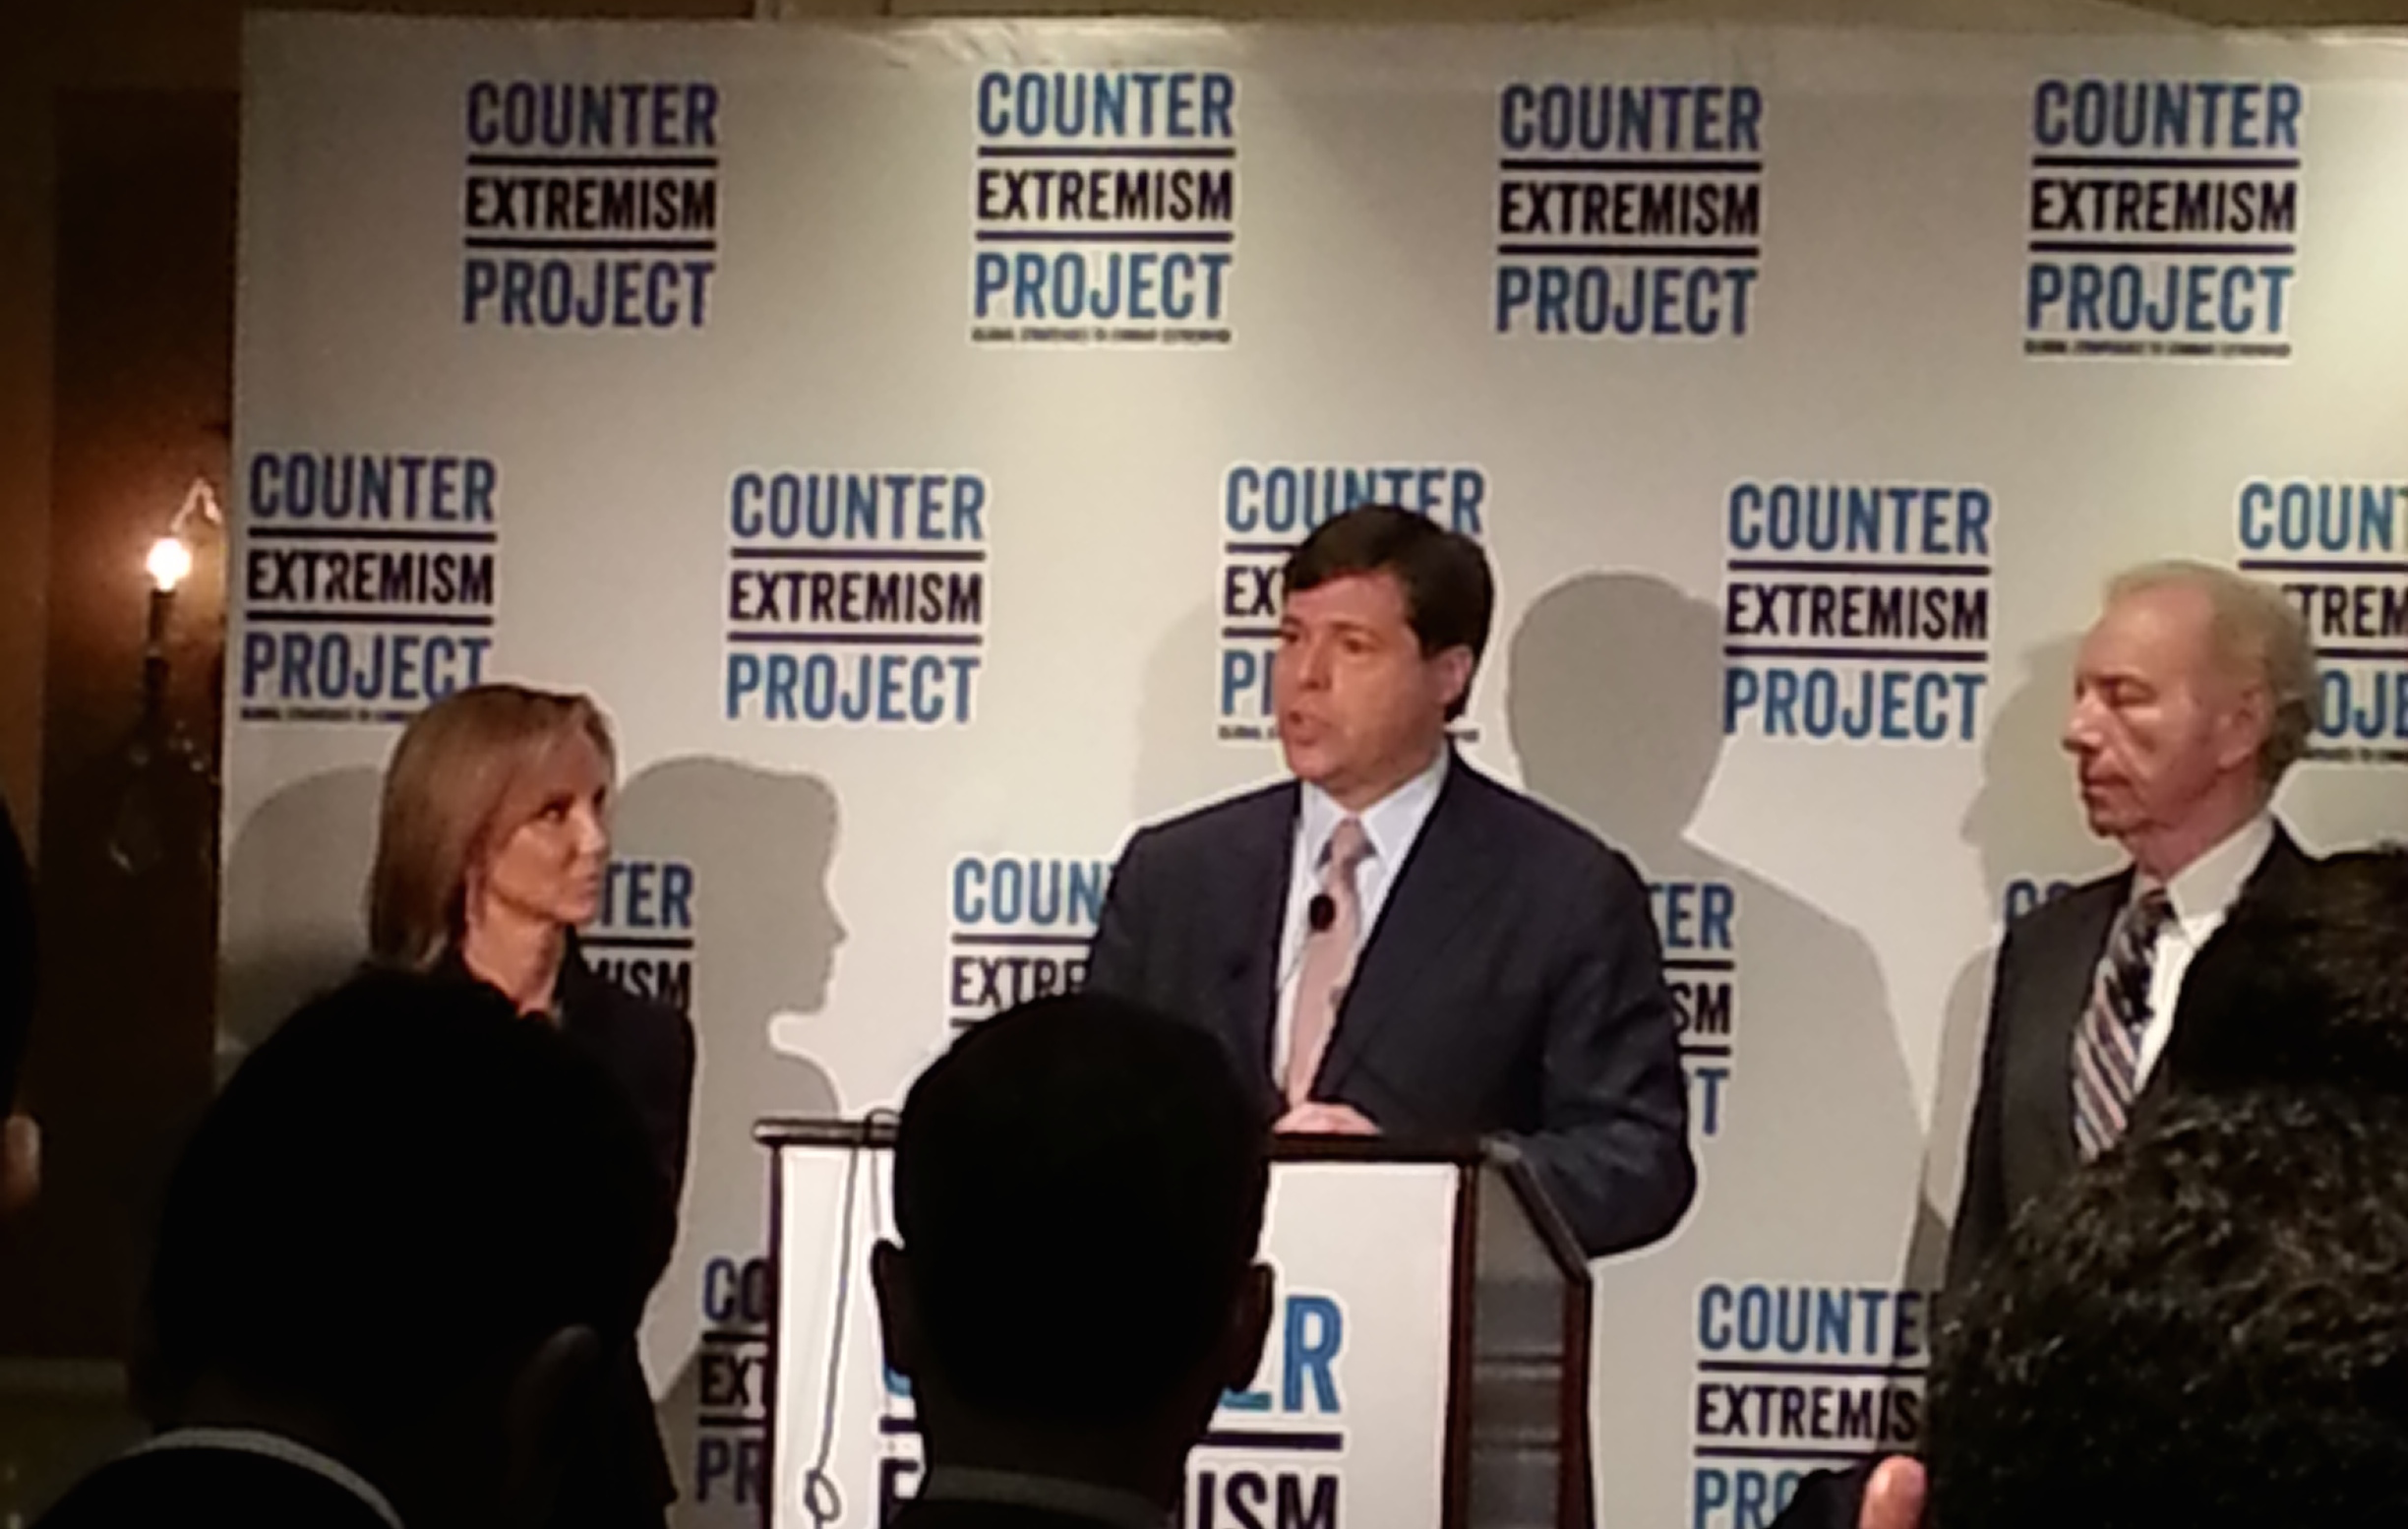 Fran Townshend, Mark Wallace and Joe Lieberman announcing the creation of the Counter Extremism Project in New York, Sept. 22, 2014. (Counter Extremism Project)